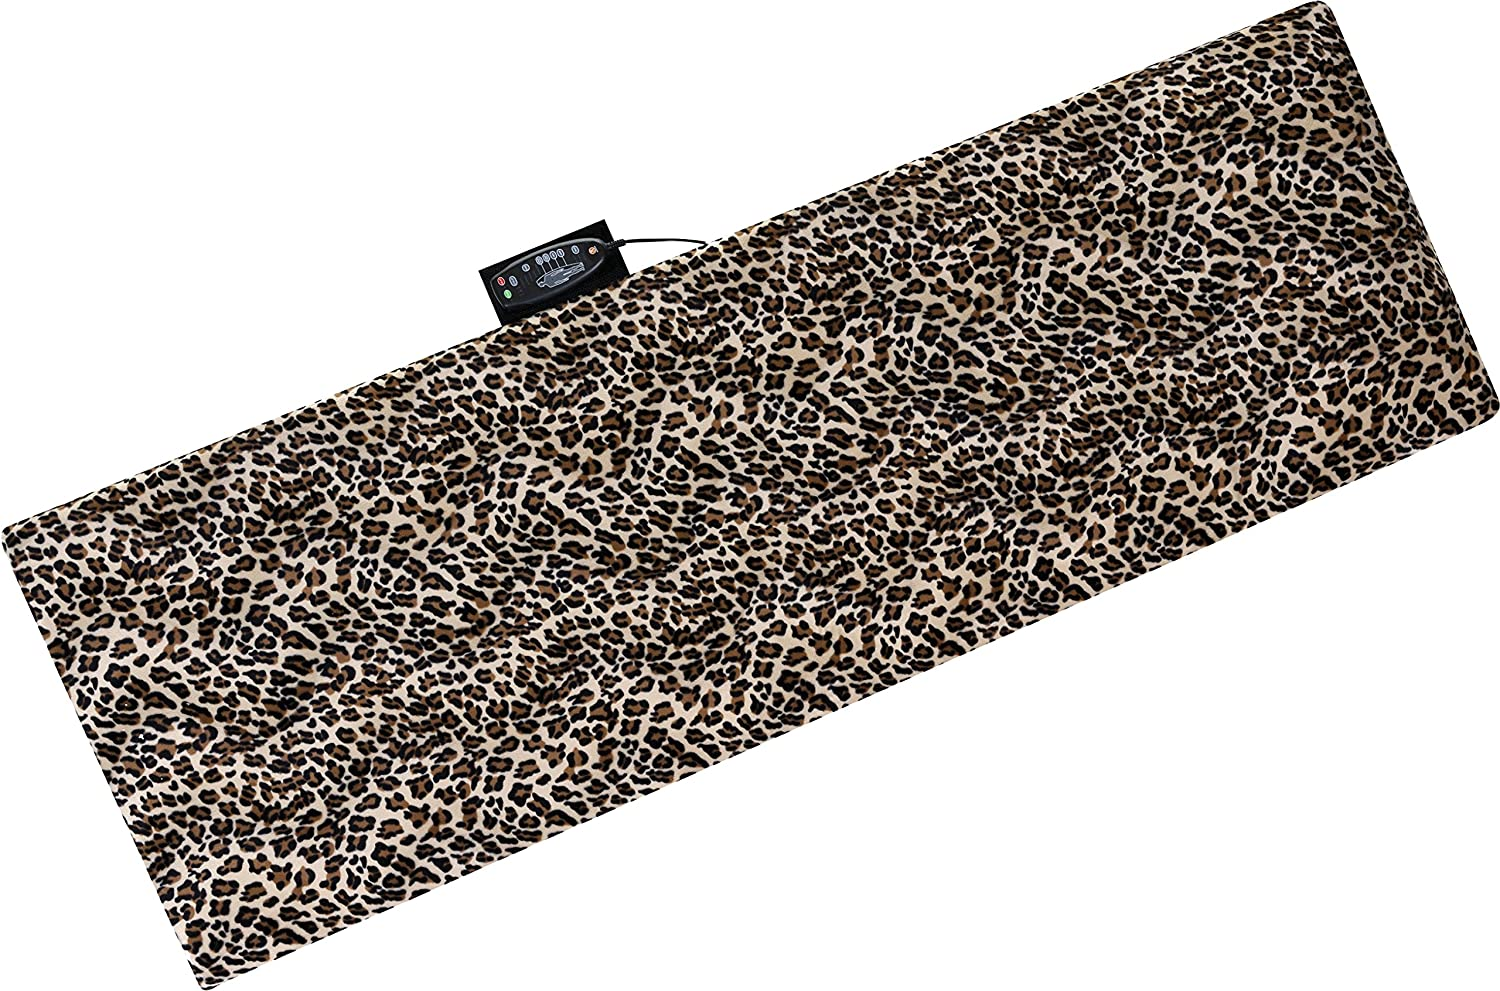 Relaxzen 10-Motor Massage Plush Mat with Lumbar Heat and Removable Cover and Pillow, Leopard